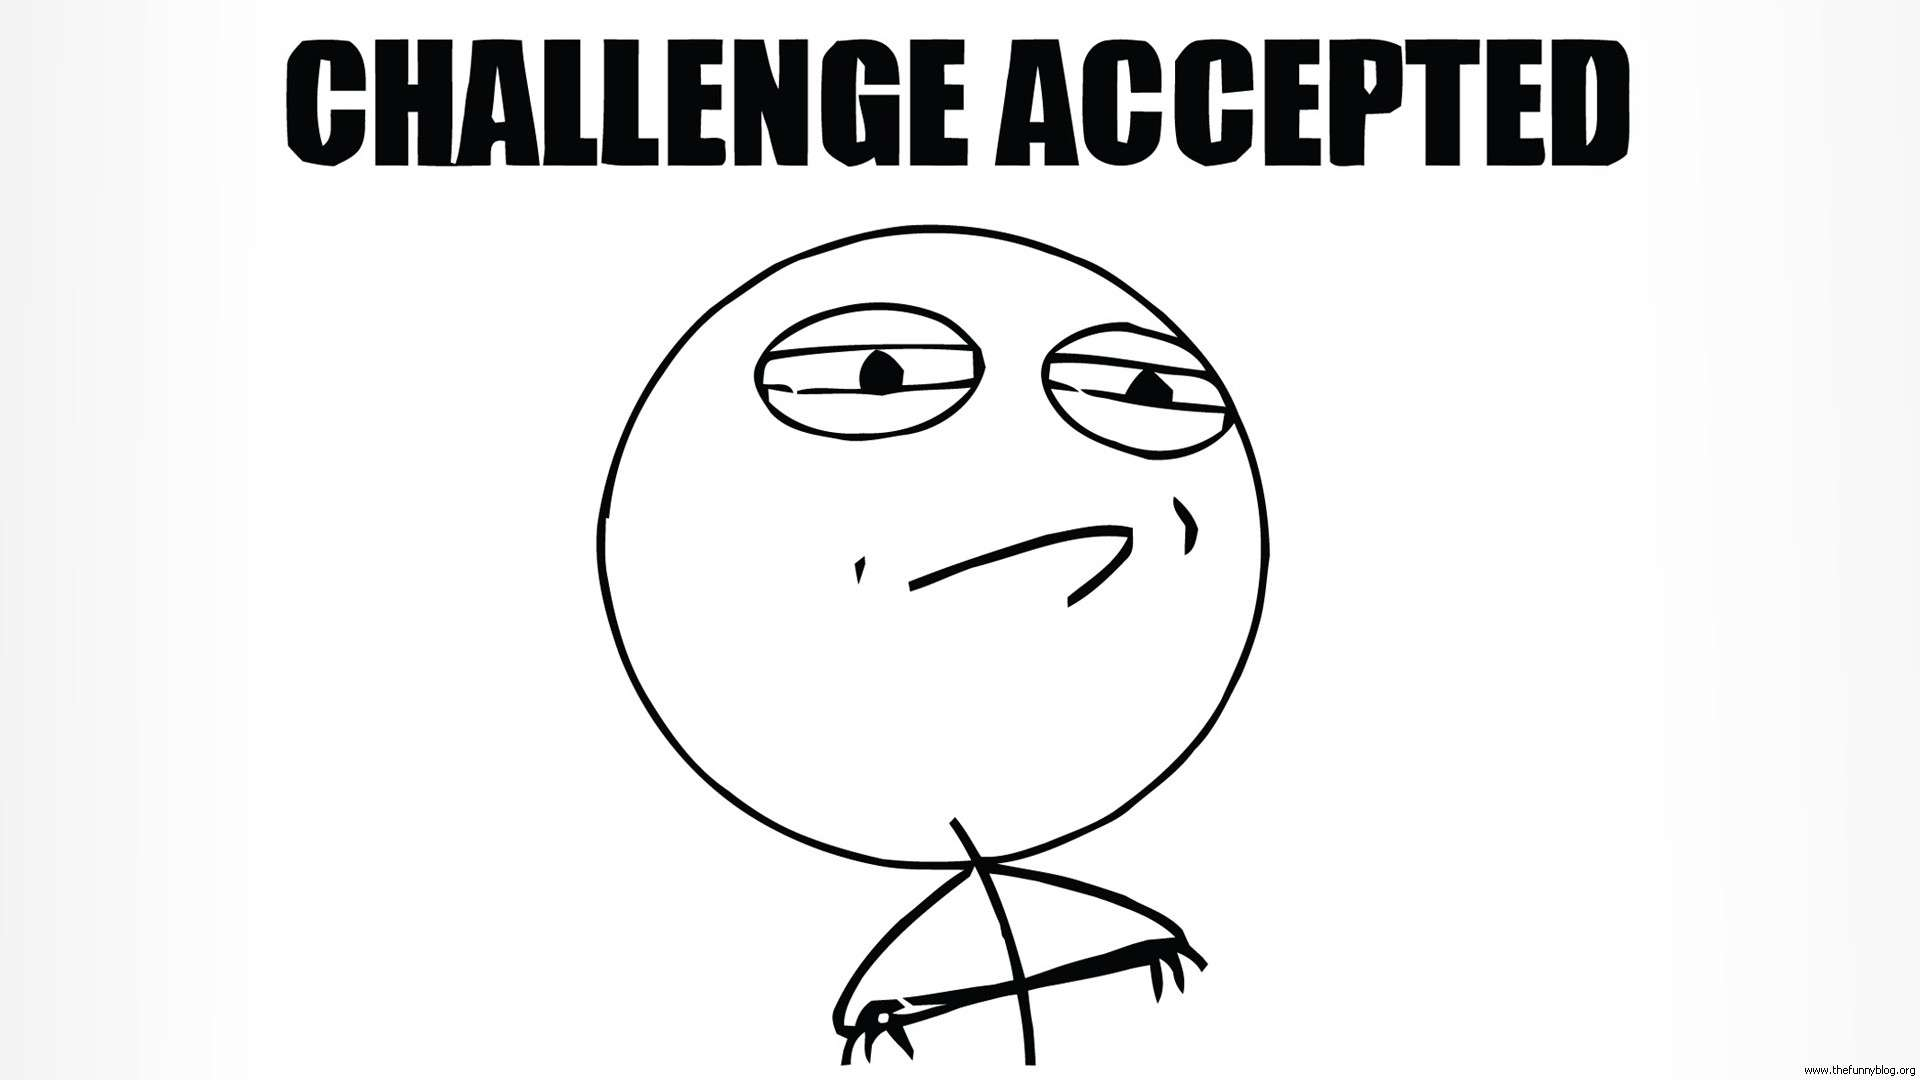 Challenge Accepted! | Admissionado